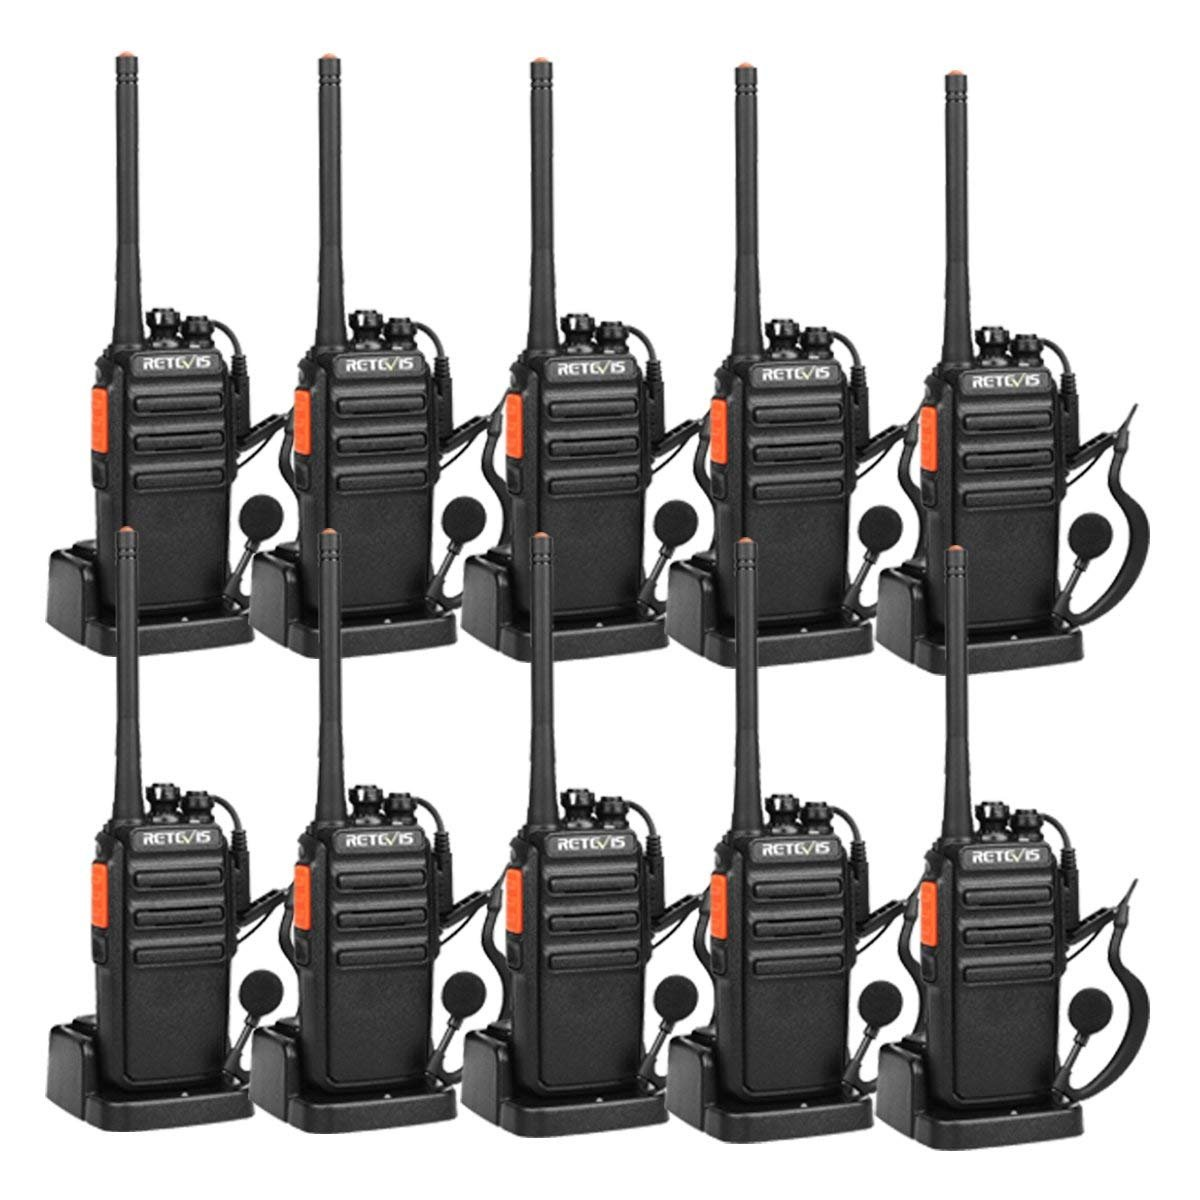 Retevis H-777S Two-Way Radios Long Range Rechargeable FRS Radio Vox Security Commercial Walkie Talkies with Earpiece Headset for Adults (10 Pack) by Retevis